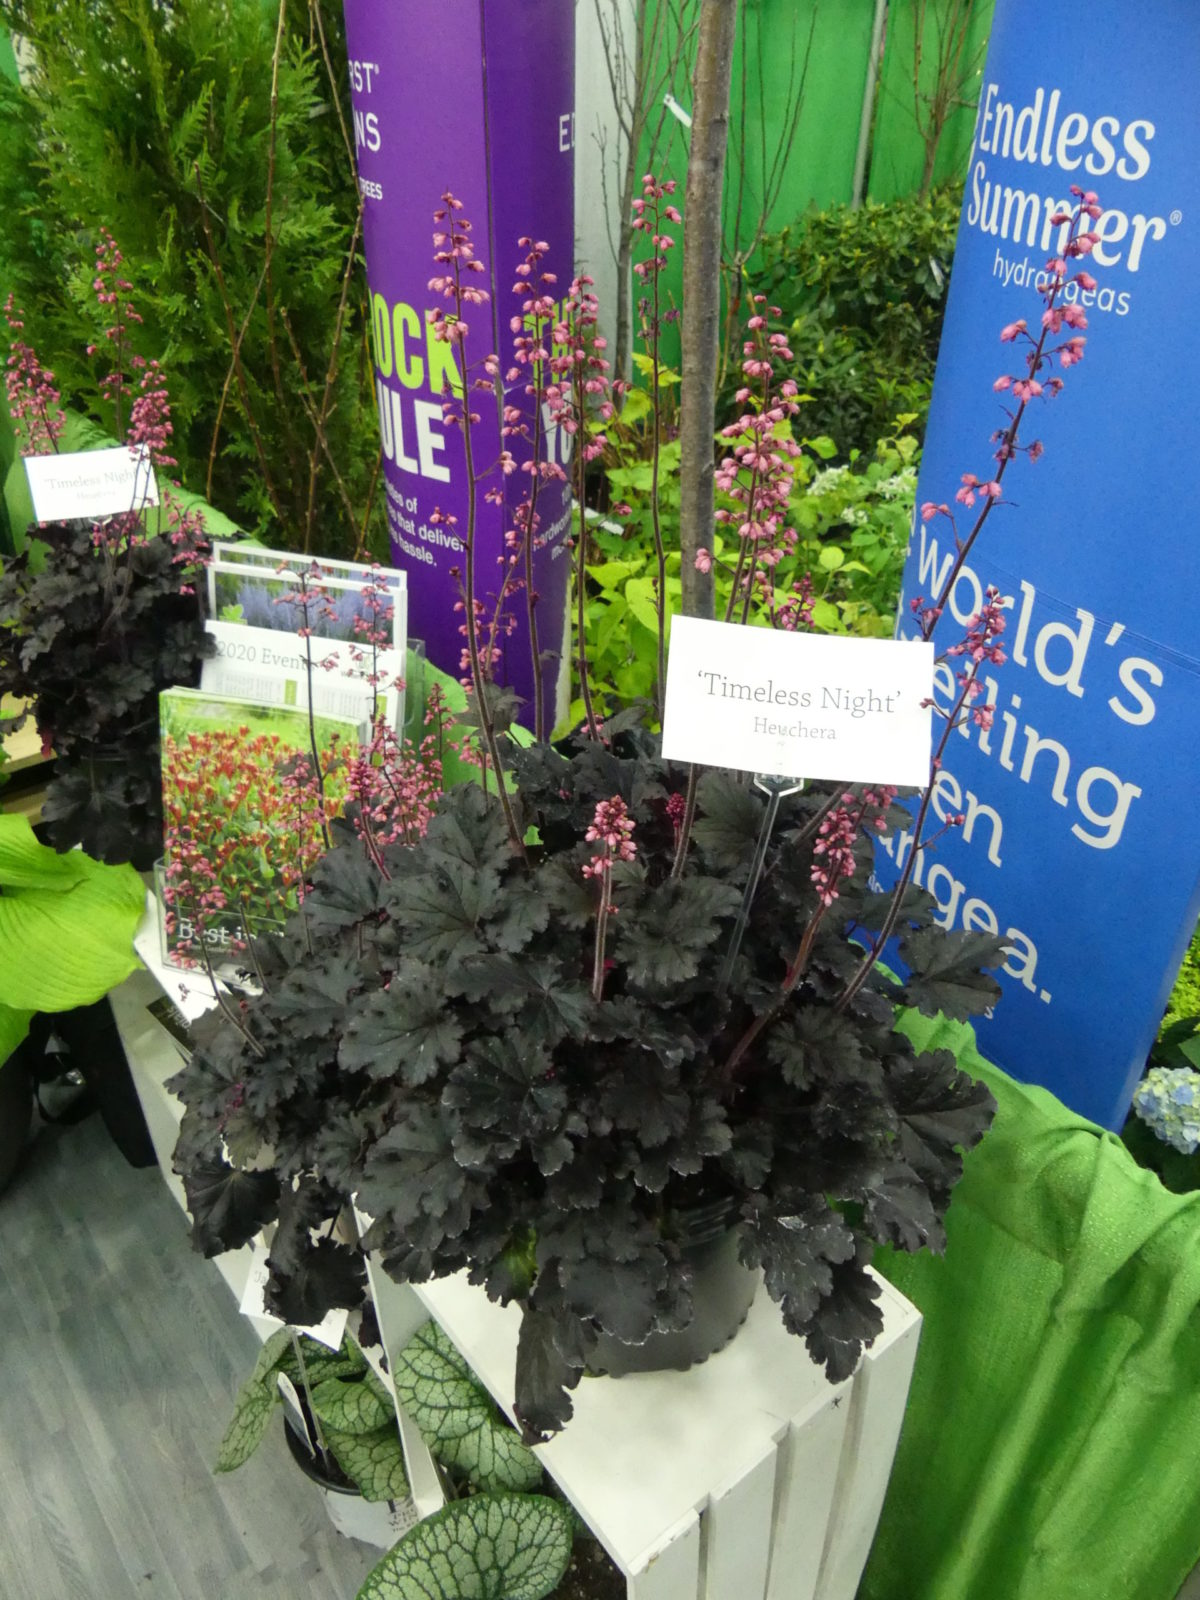 Heuchera Timeless Night was introduced by Walters Gardens last year and will show up in garden centers this year. It has dark foliage that's almost black with medium pink flowers. It will perform similarly to other Heucheras in the